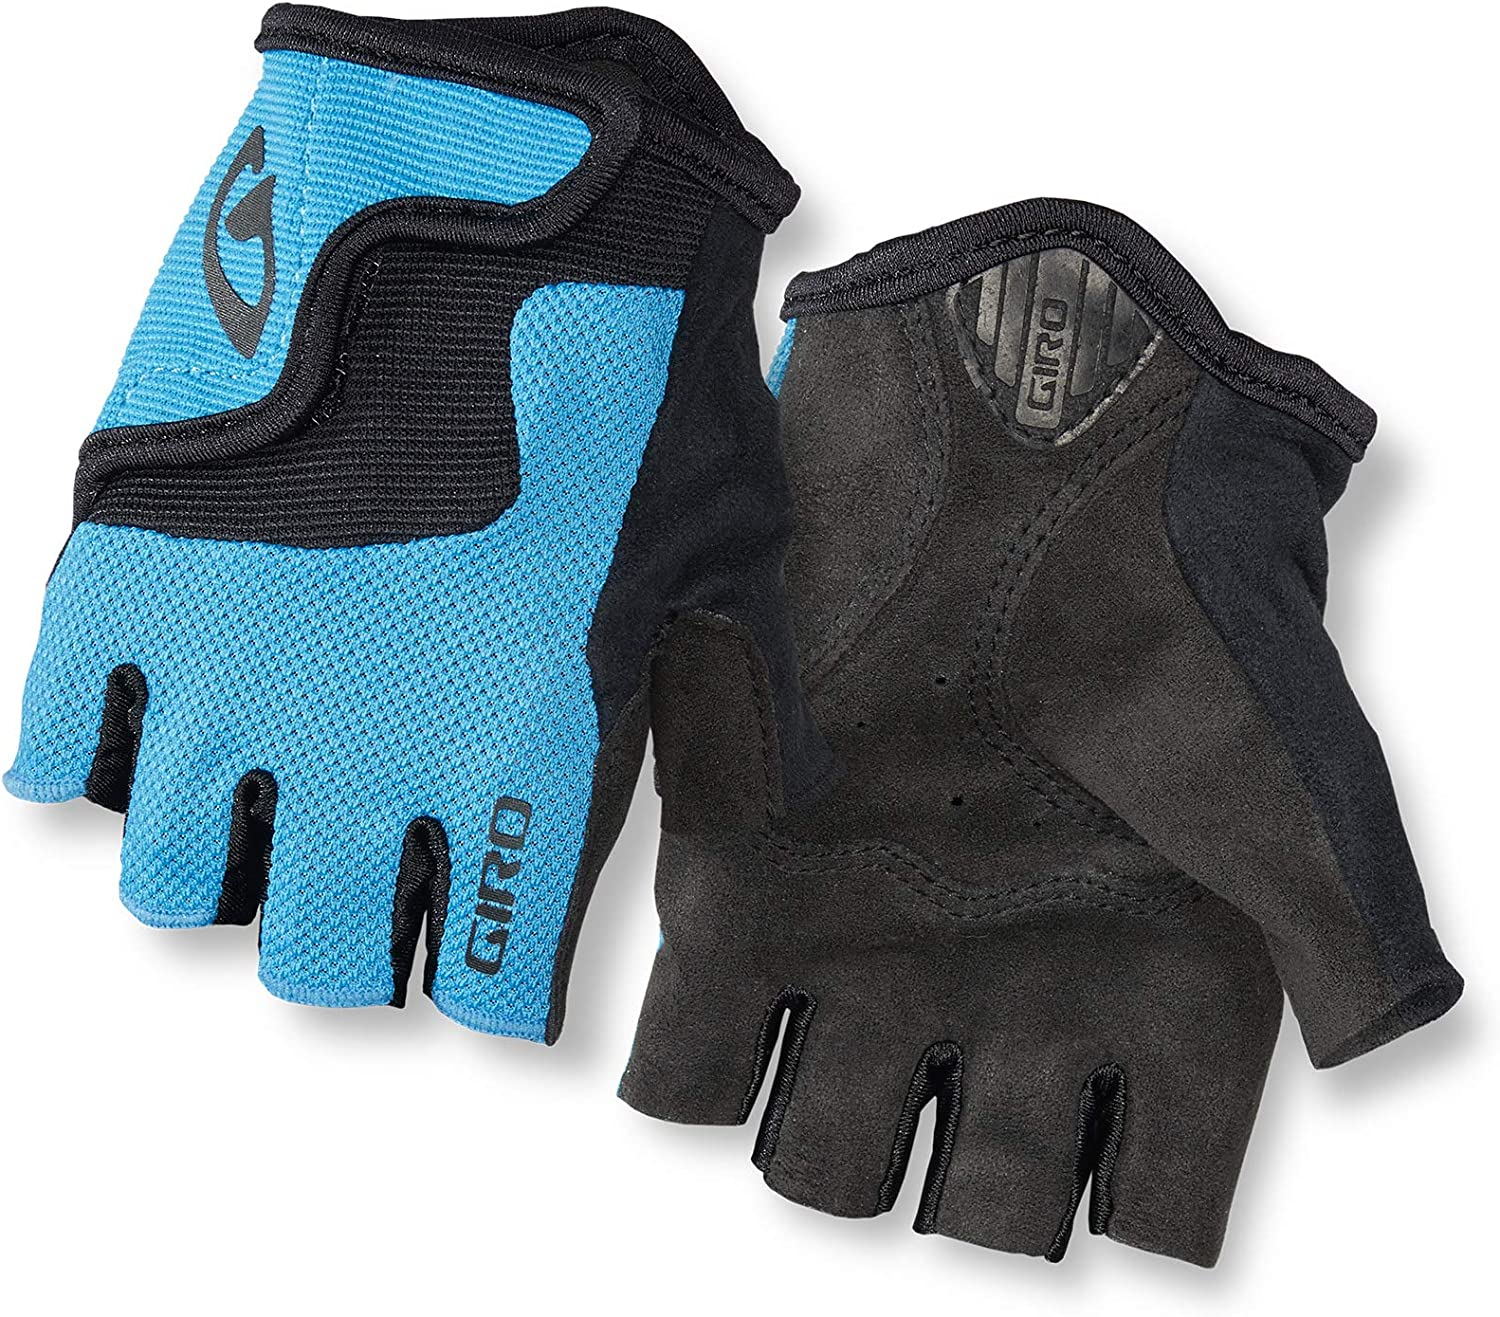 Giro Bravo Jr Youth Road Cycling Gloves